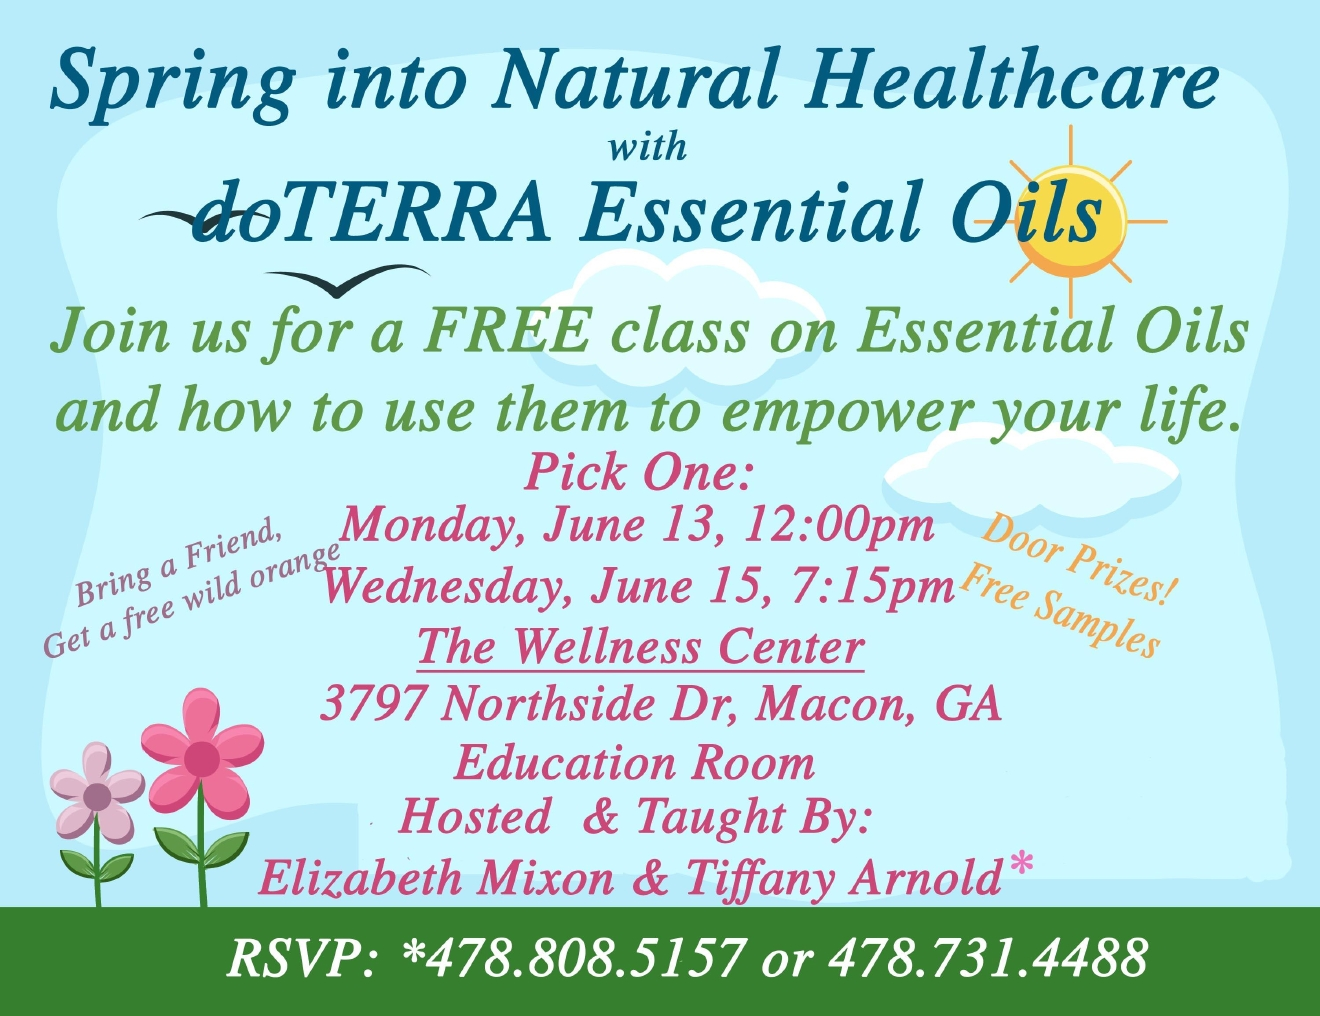 Essential Oil classes are offered in Macon. E. Mixon